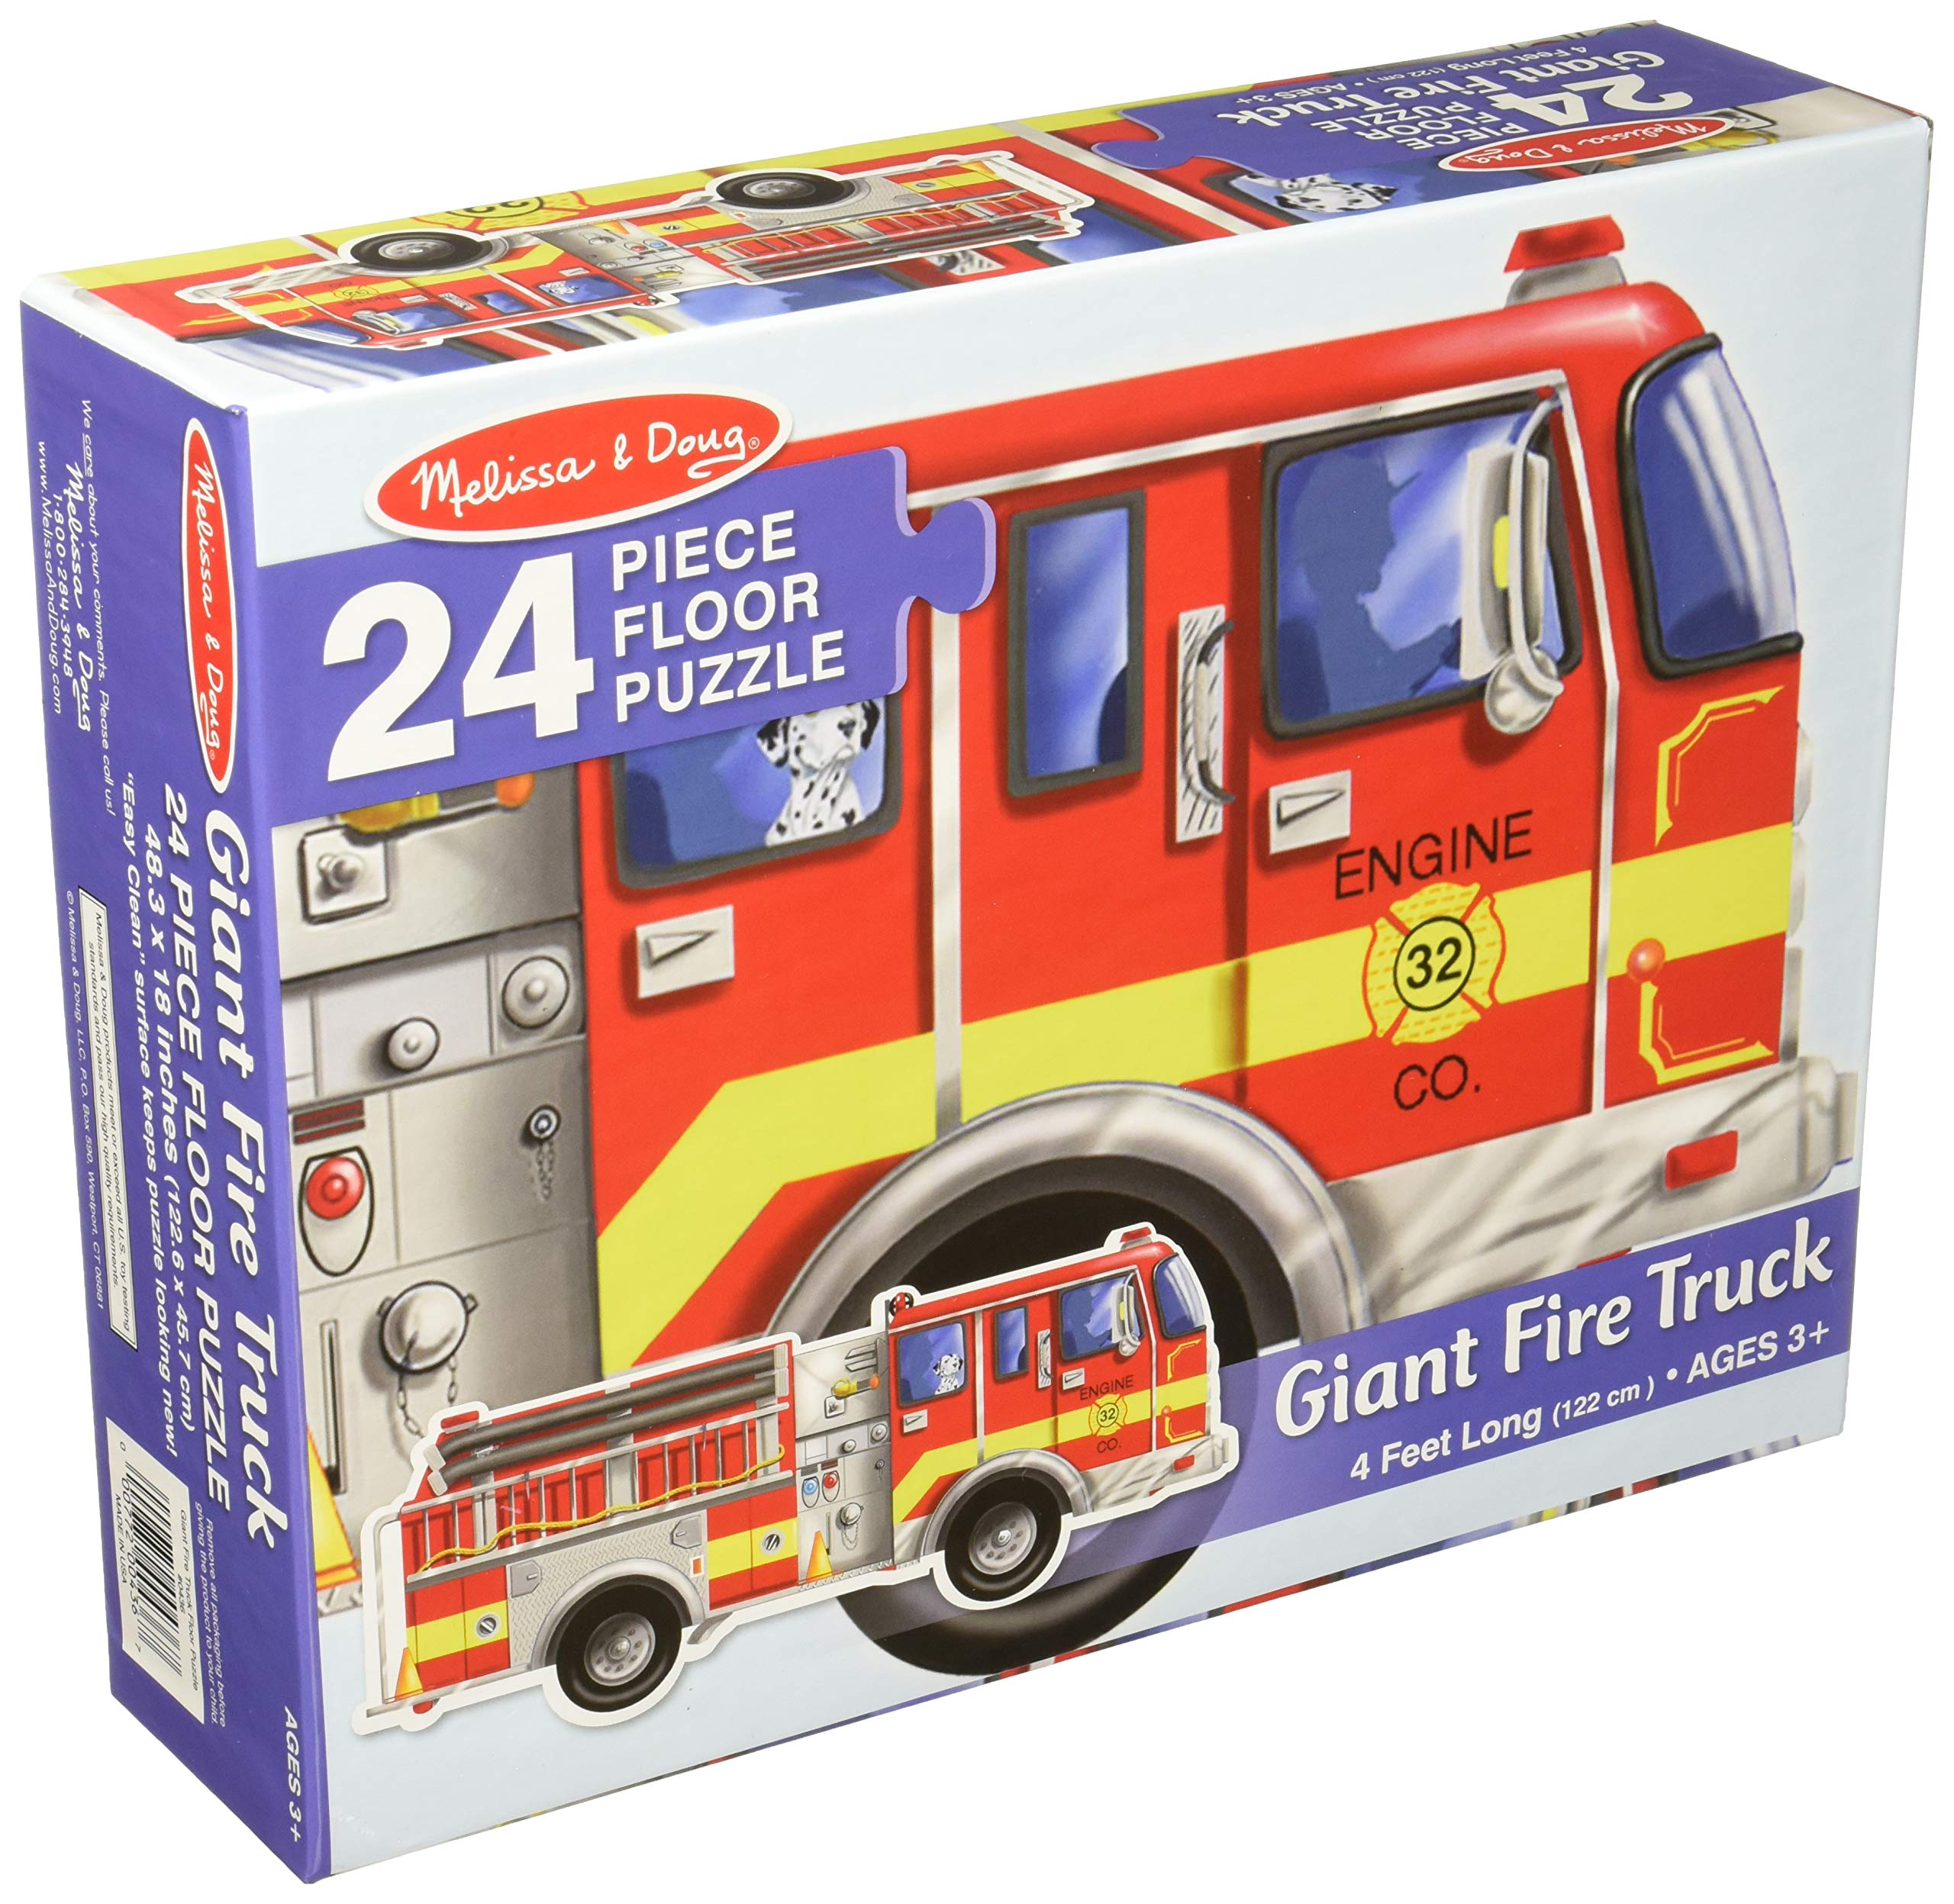 Melissa & Doug Fire Truck Jumbo Jigsaw Floor Puzzle (24 pcs, 4 feet long)